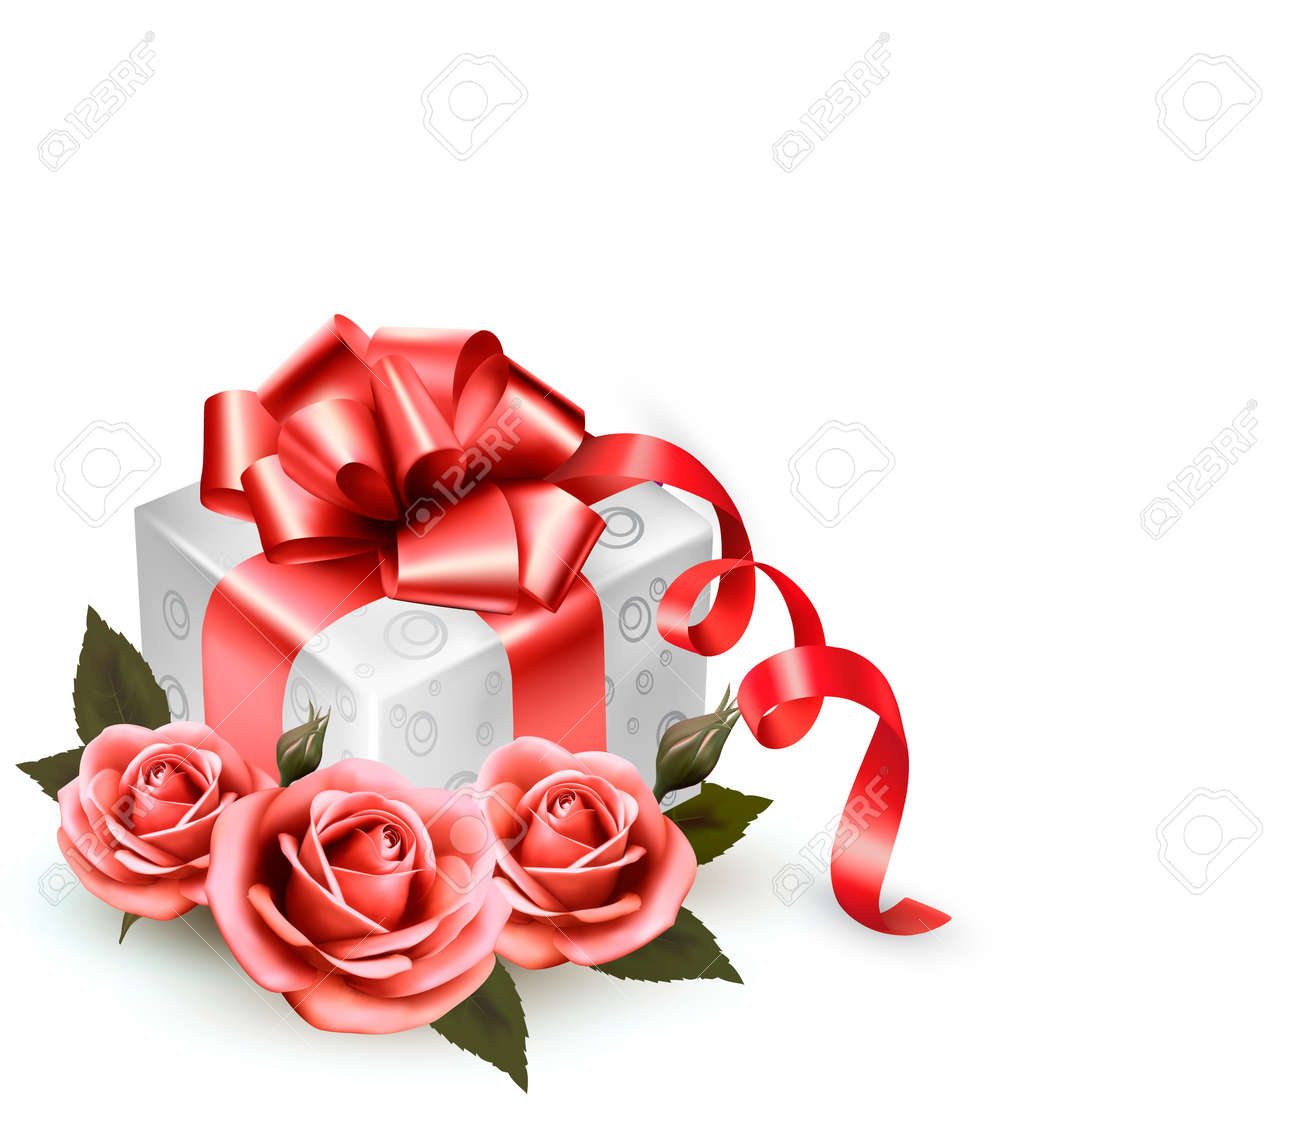 Holiday background with pink roses and gift box Stock Vector - 19783325